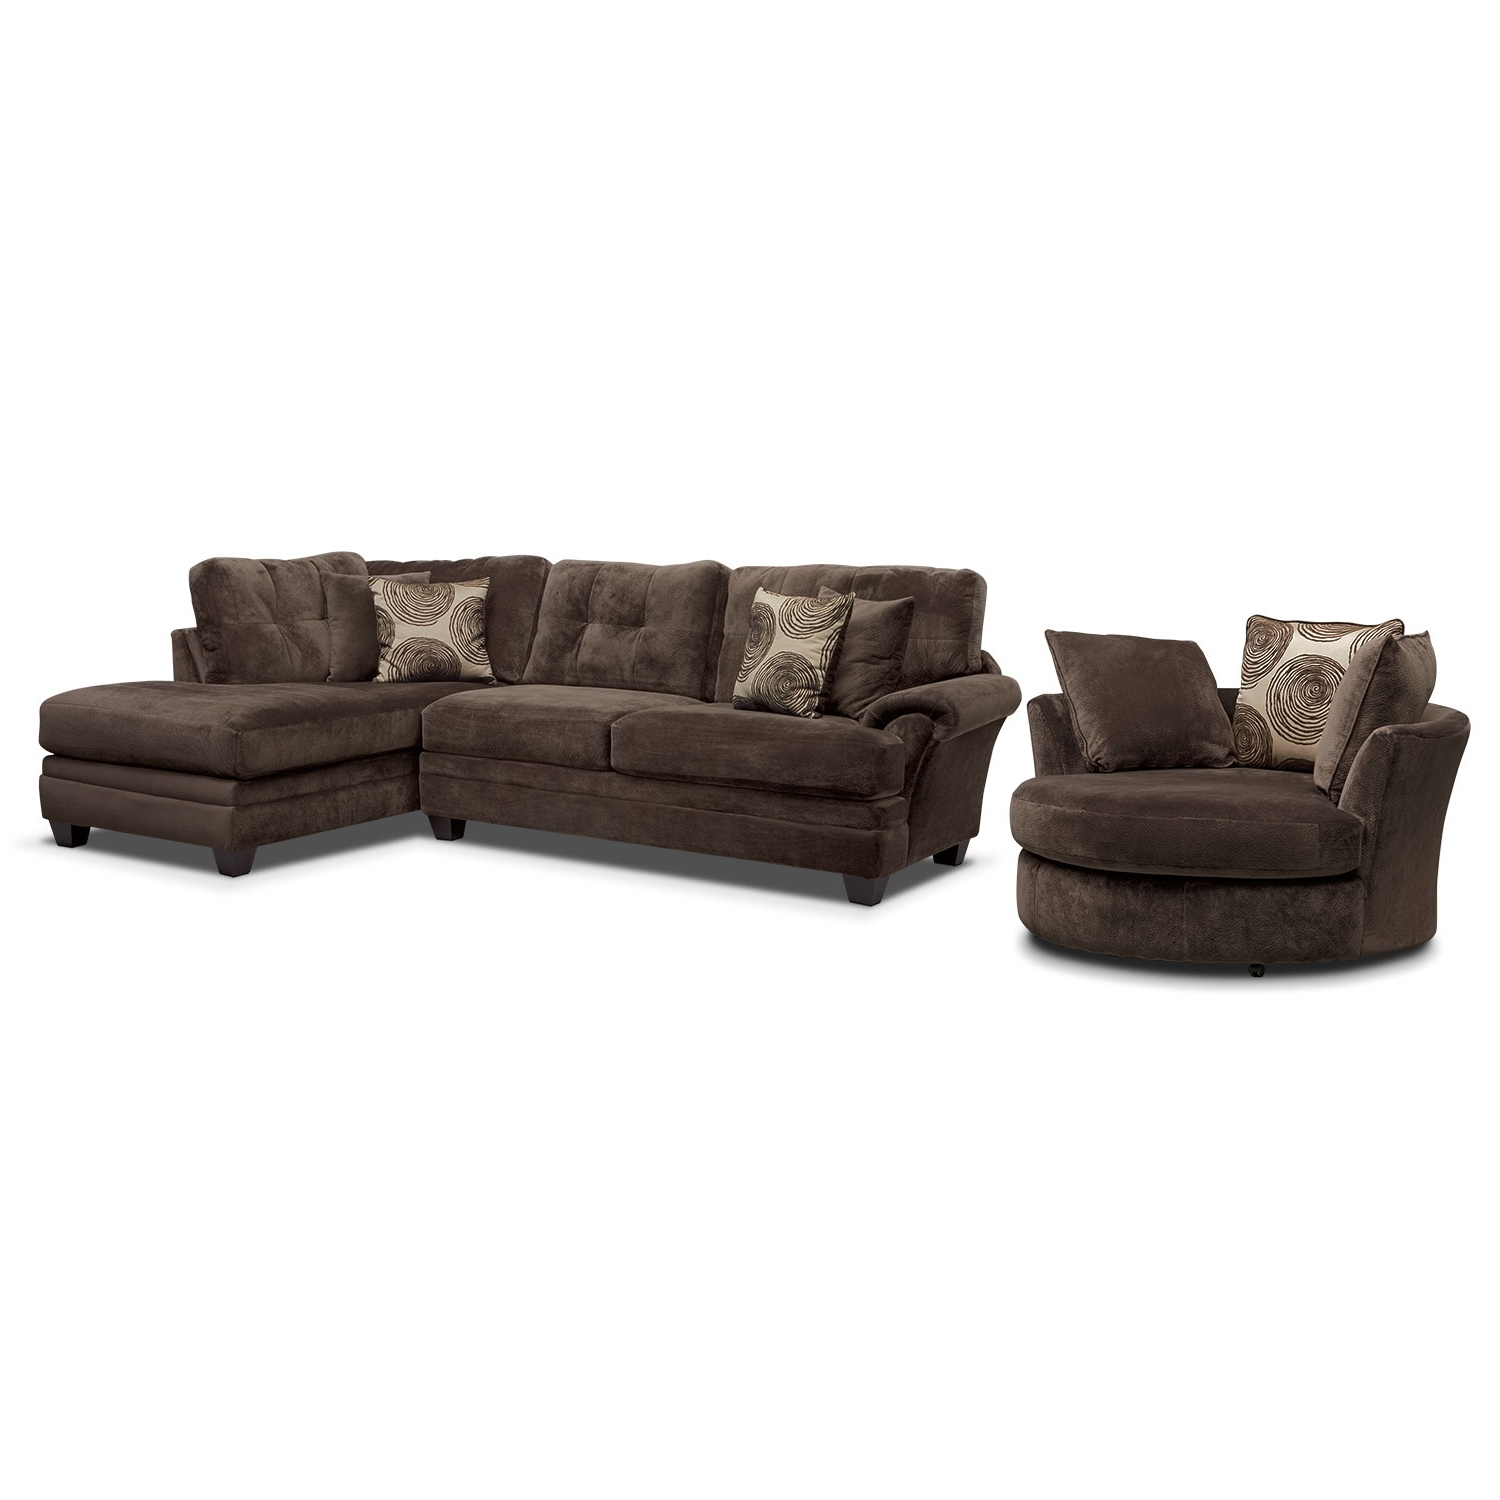 Sofas With Swivel Chair For Popular Cordelle 2 Piece Right Facing Chaise Sectional And Swivel Chair (View 15 of 20)